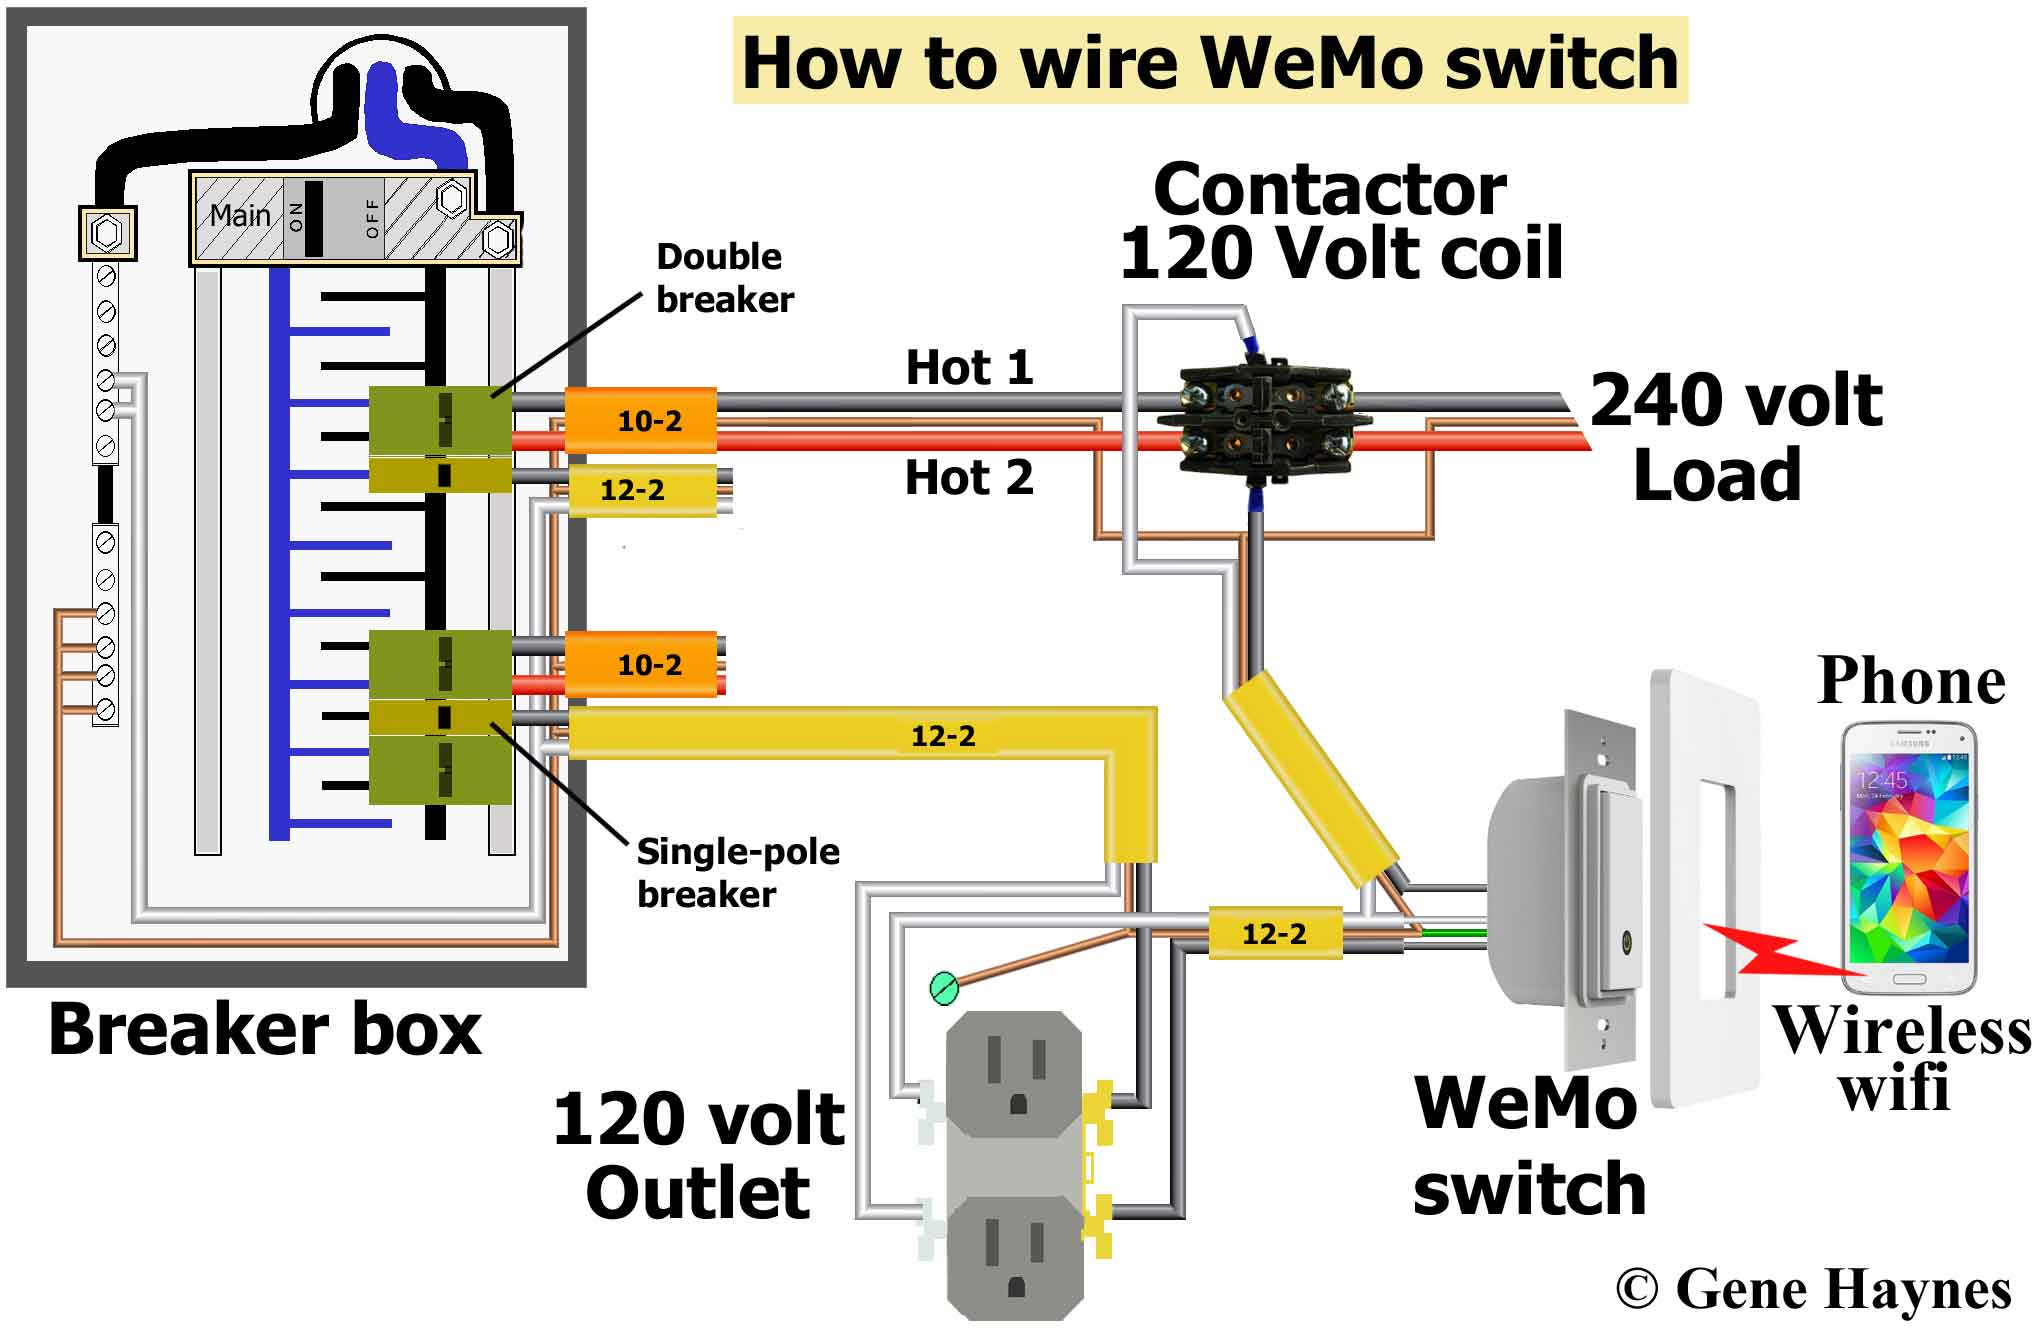 WeMo switch wiring illustration 3 how to wire on delay timer voltage free contact wiring diagram at eliteediting.co